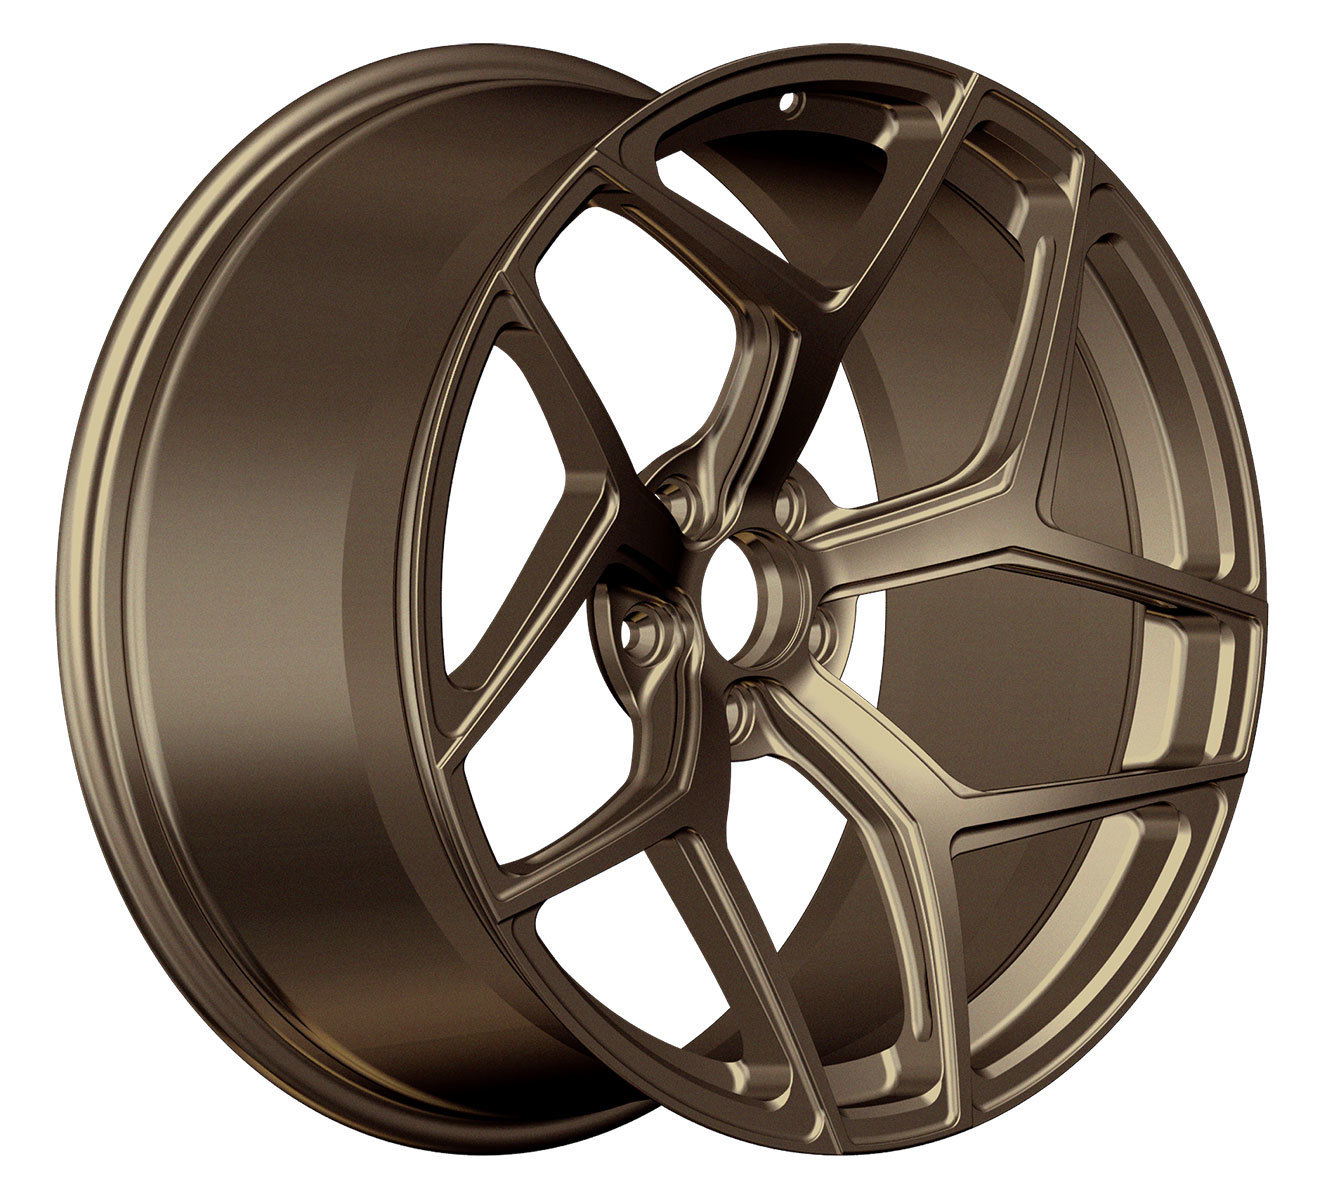 Beneventi K5S forged wheels